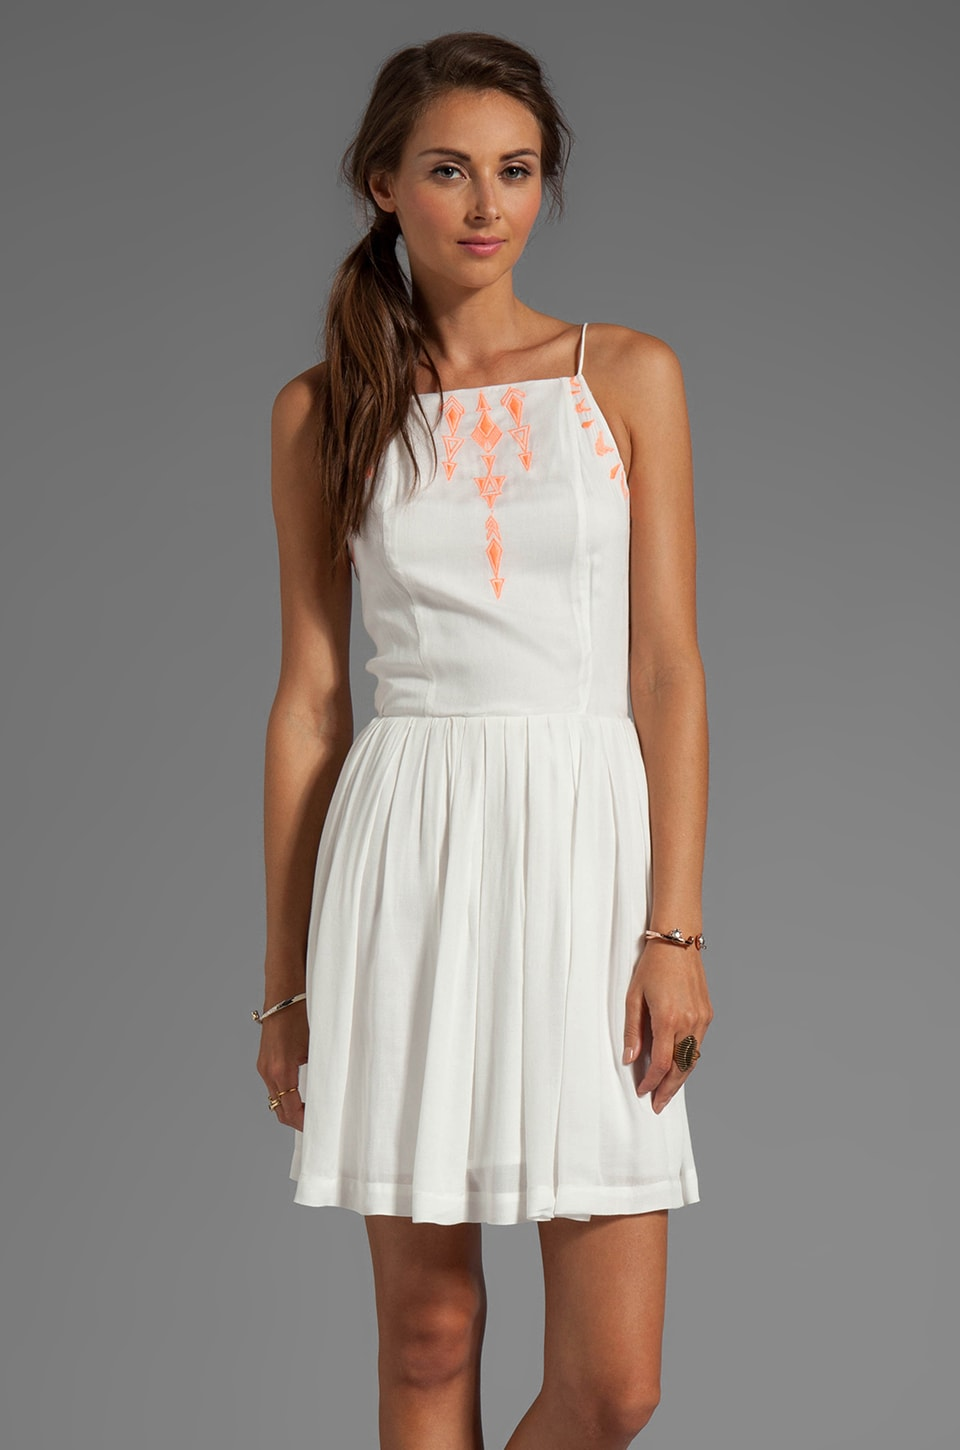 Dolce Vita Ricka Garbo Embroidery Dress in Coral/White